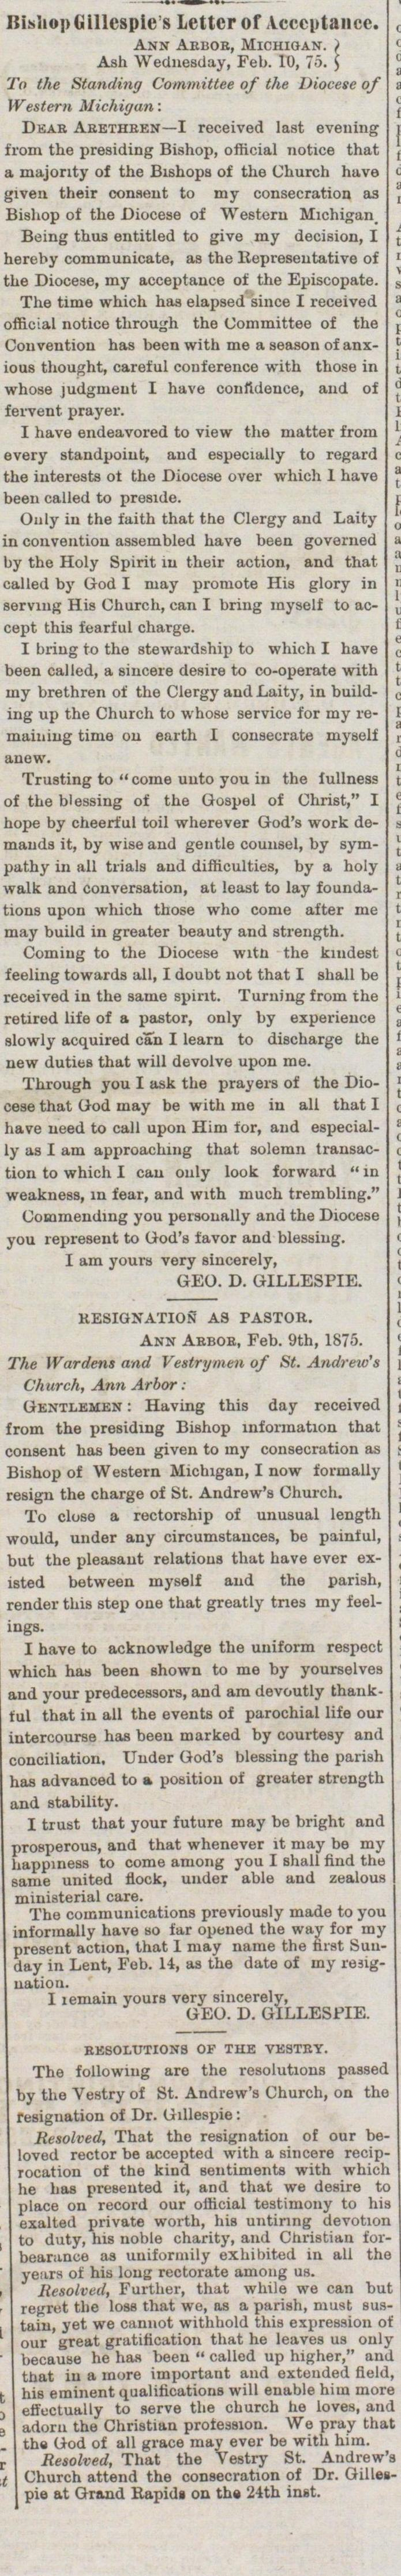 Bishop George D. Gillespie's Letter Of Acceptance To Post of Bishop of Diocese of Western Michigan  image